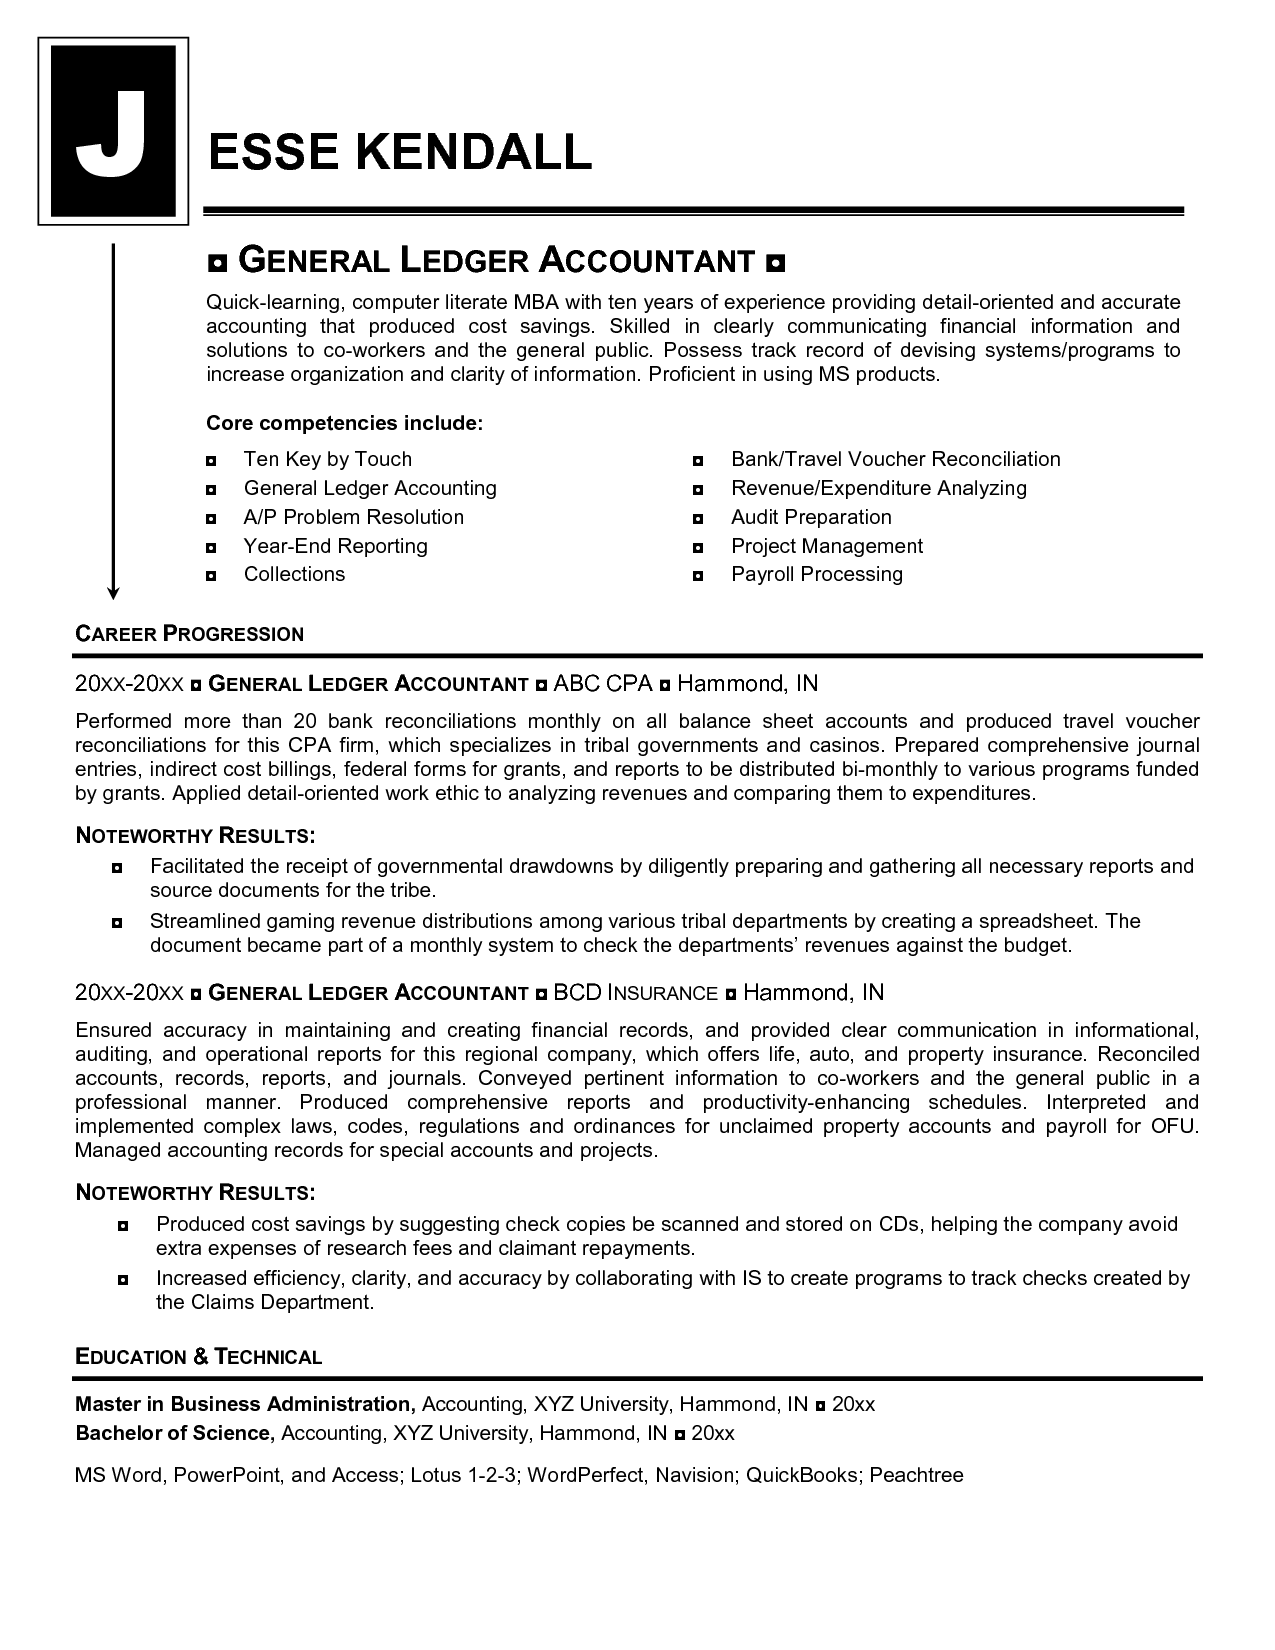 General Ledger Accountant Resume Mikes Blog